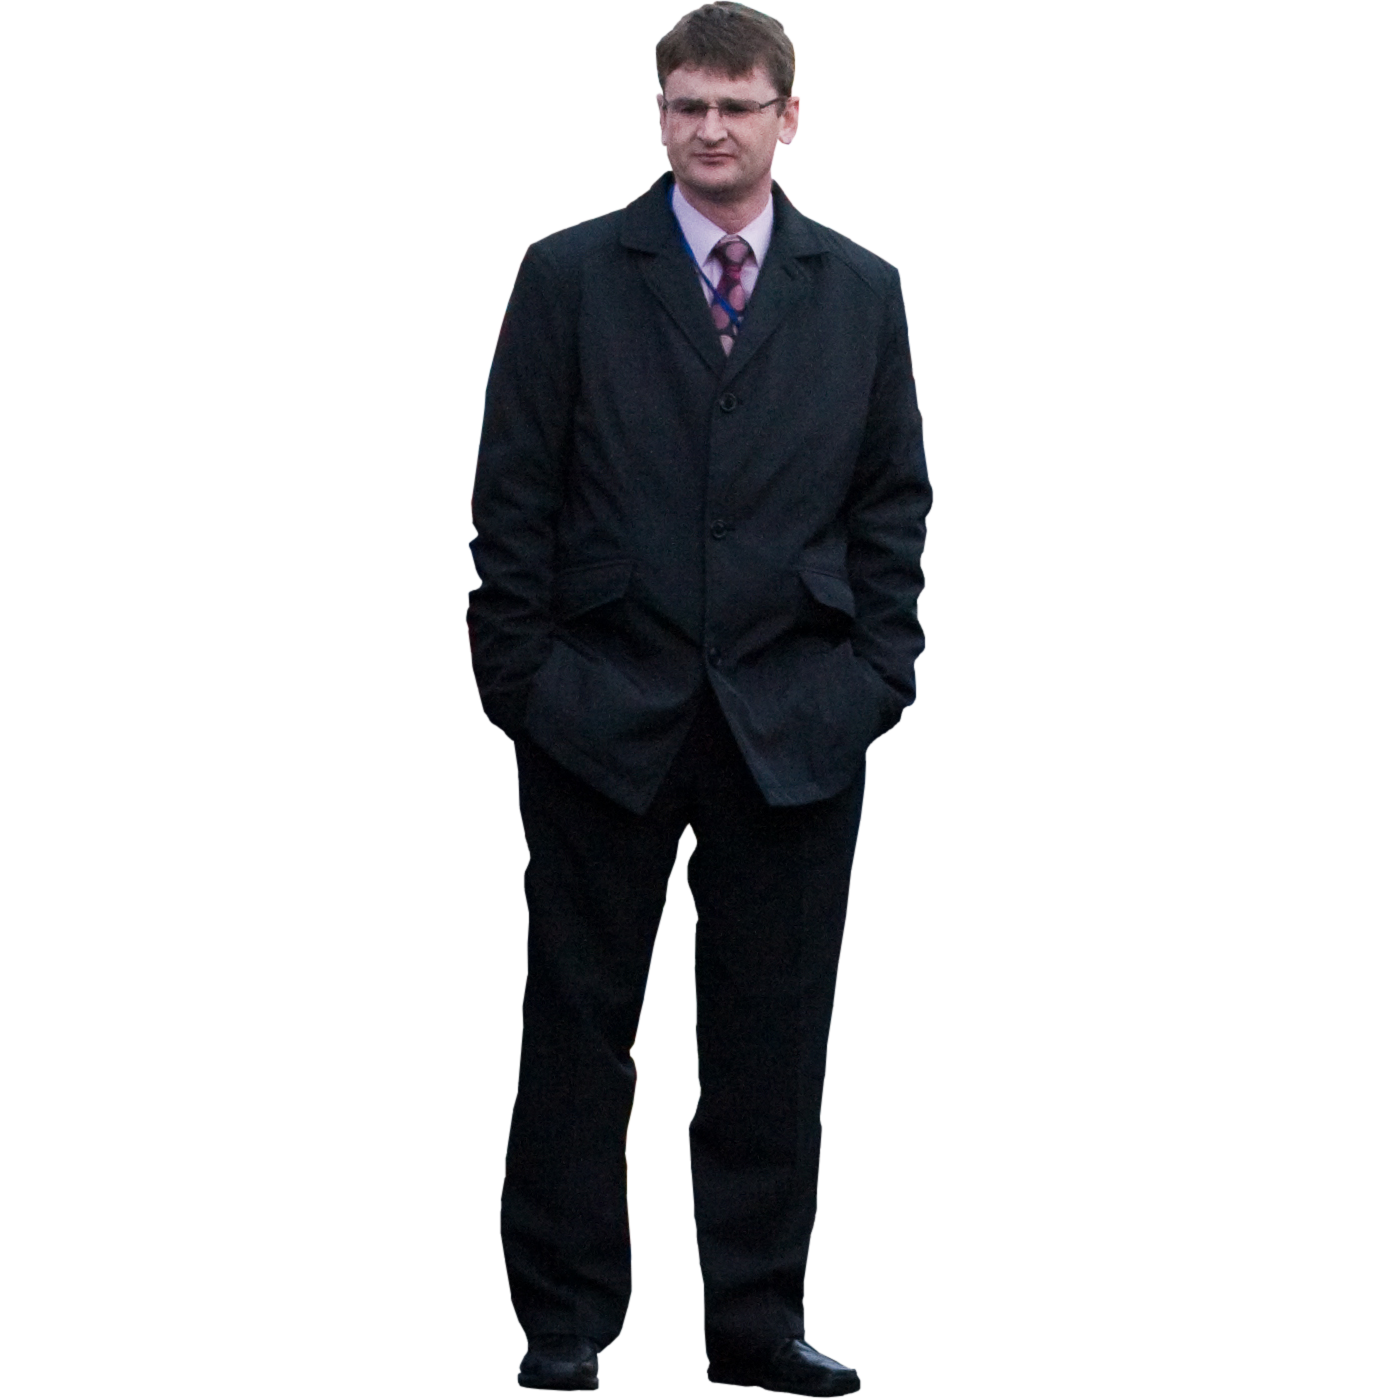 Transparent personality cutout. Suit png images all